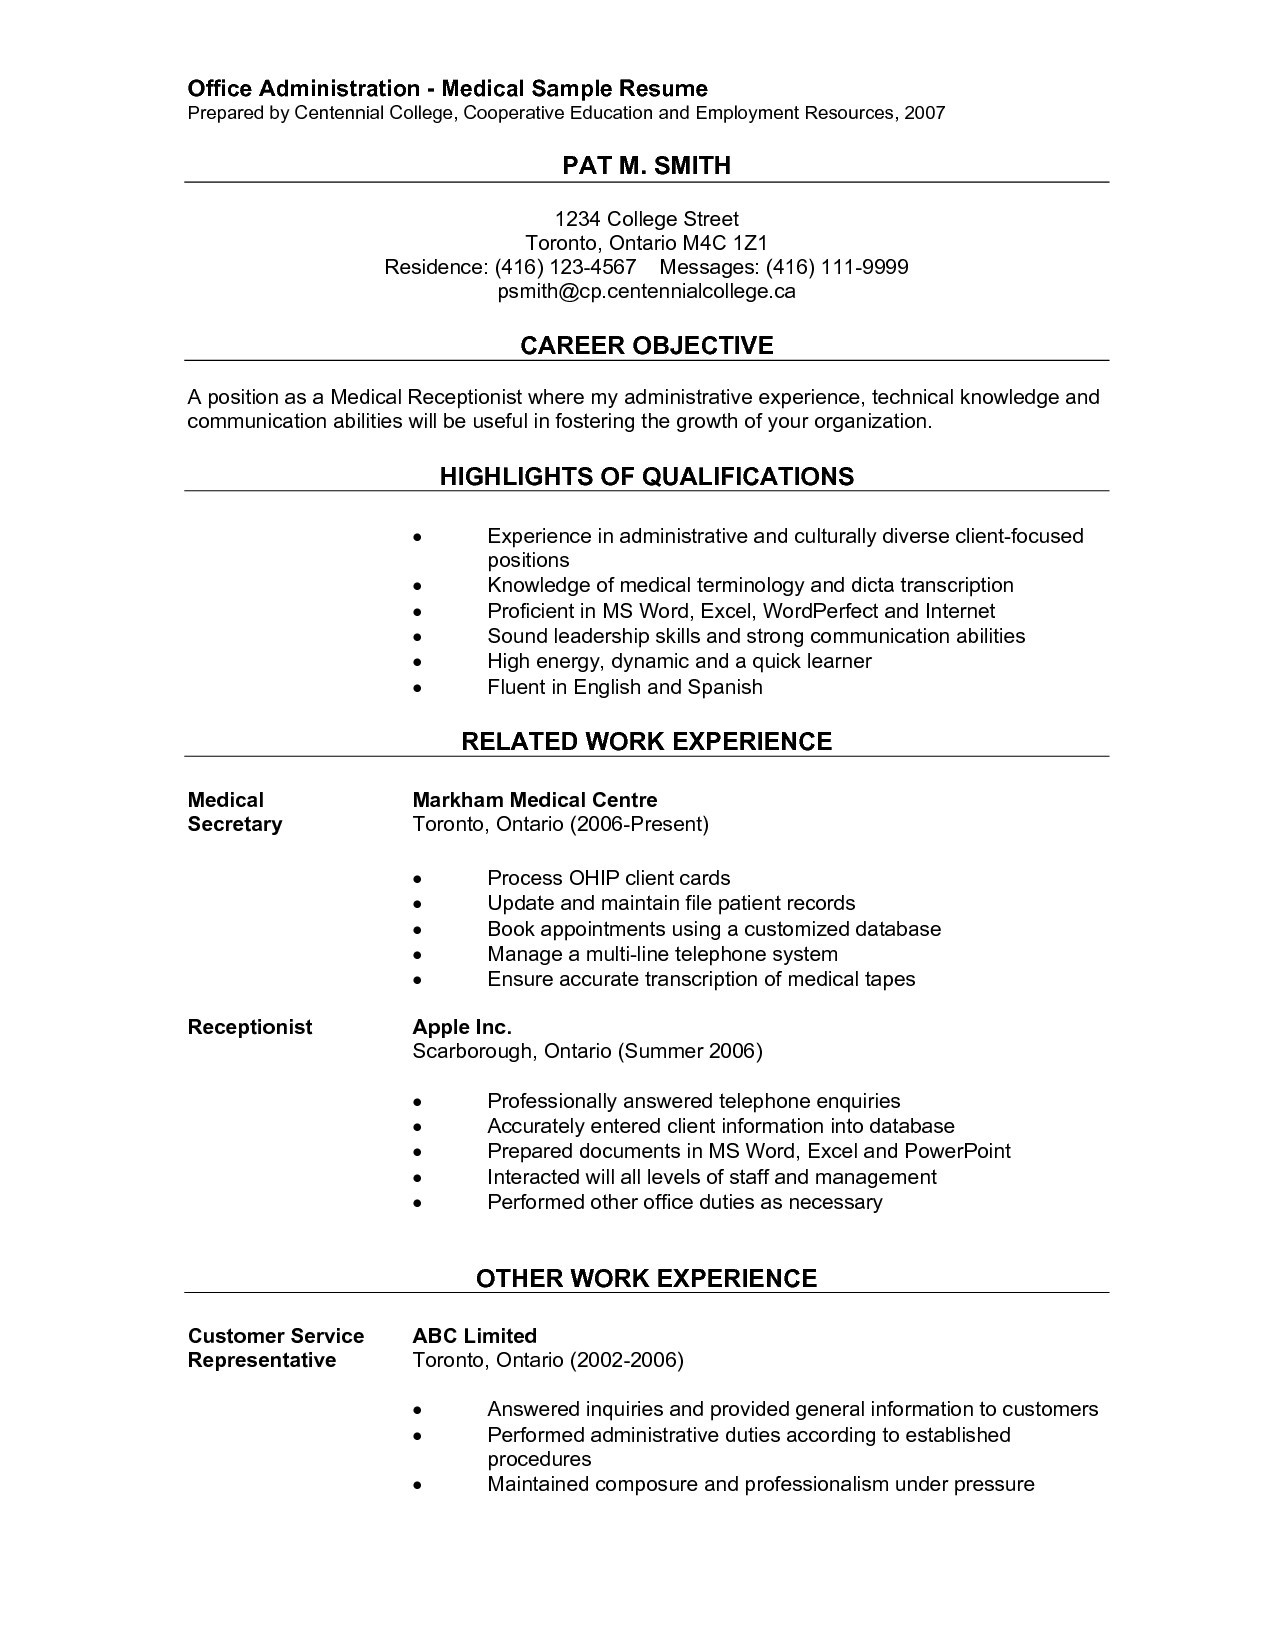 Medical Office Manager Resume Example - Medical Fice Manager Resume Examples Best New Medical Fice Manager